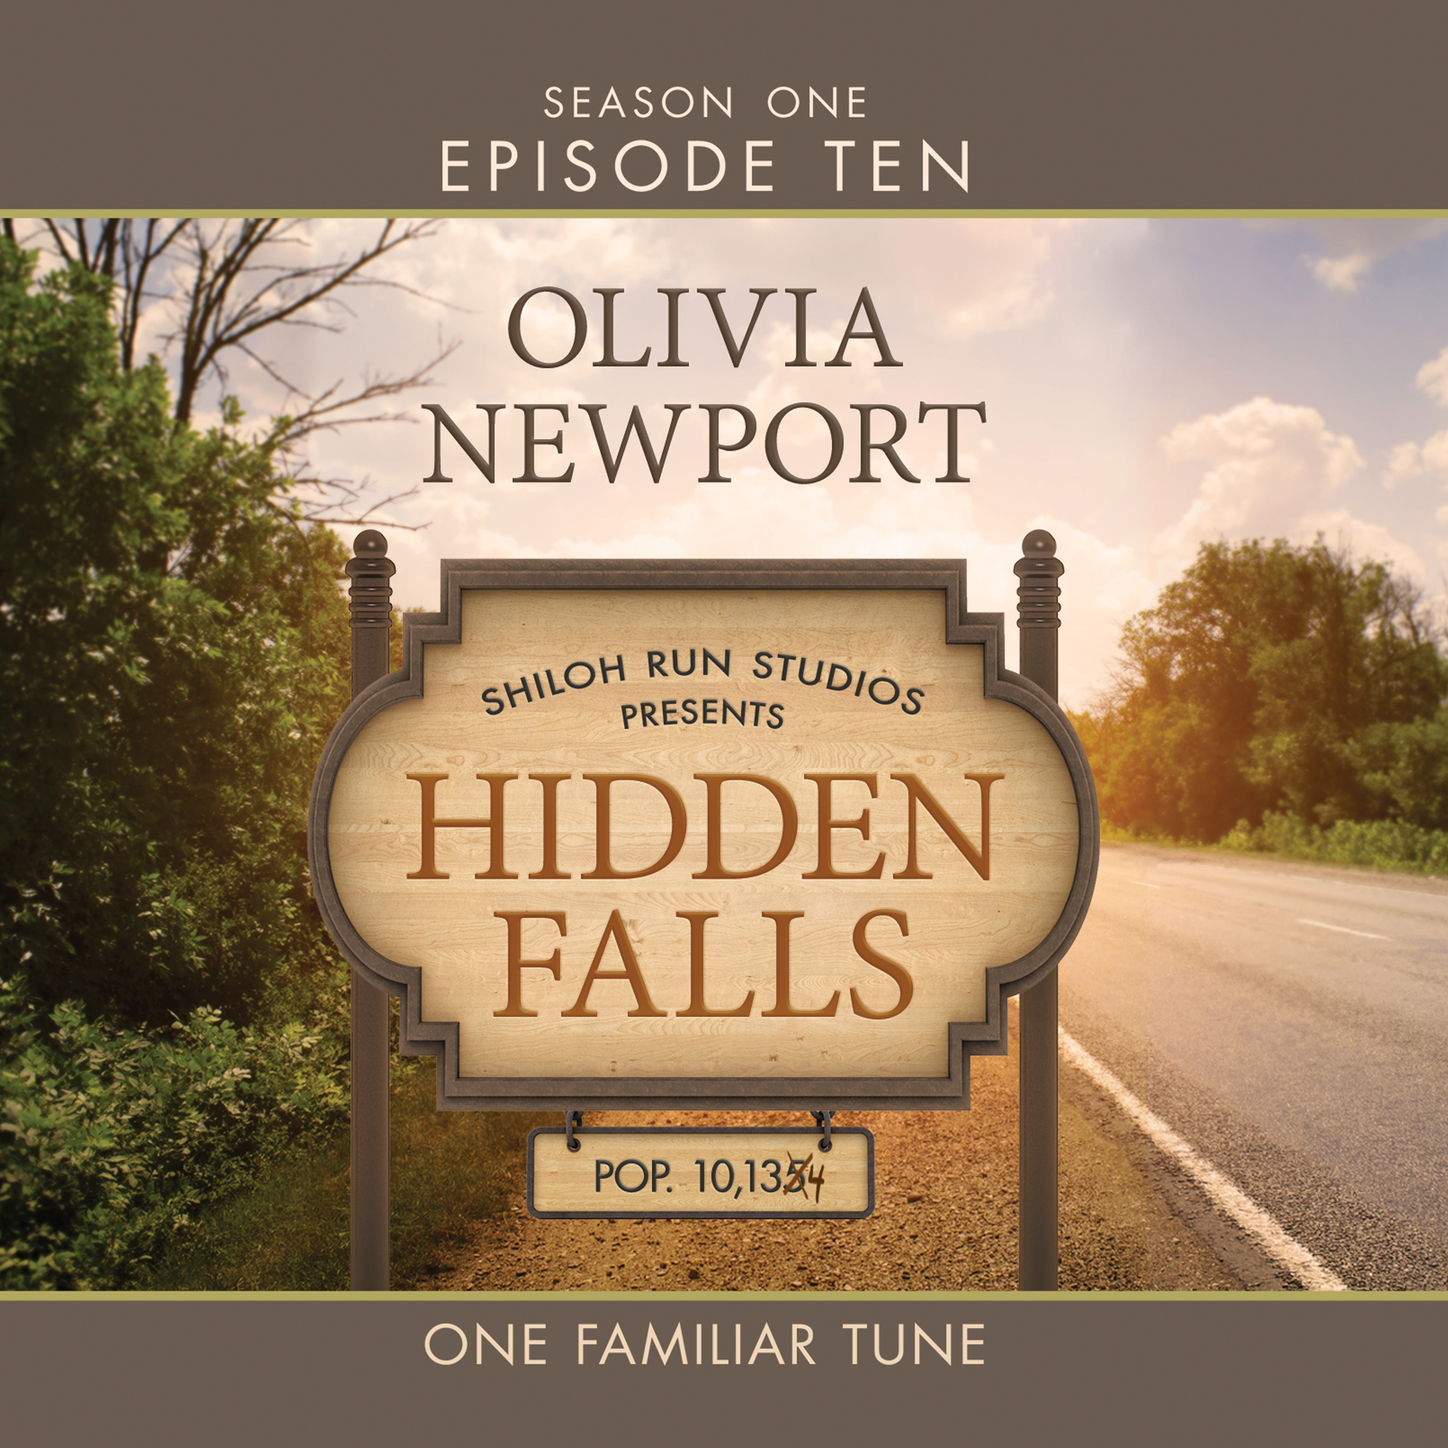 Скачать Hidden Falls, Season 1, Episode 10: One Familiar Tune (Unabridged) - Olivia Newport